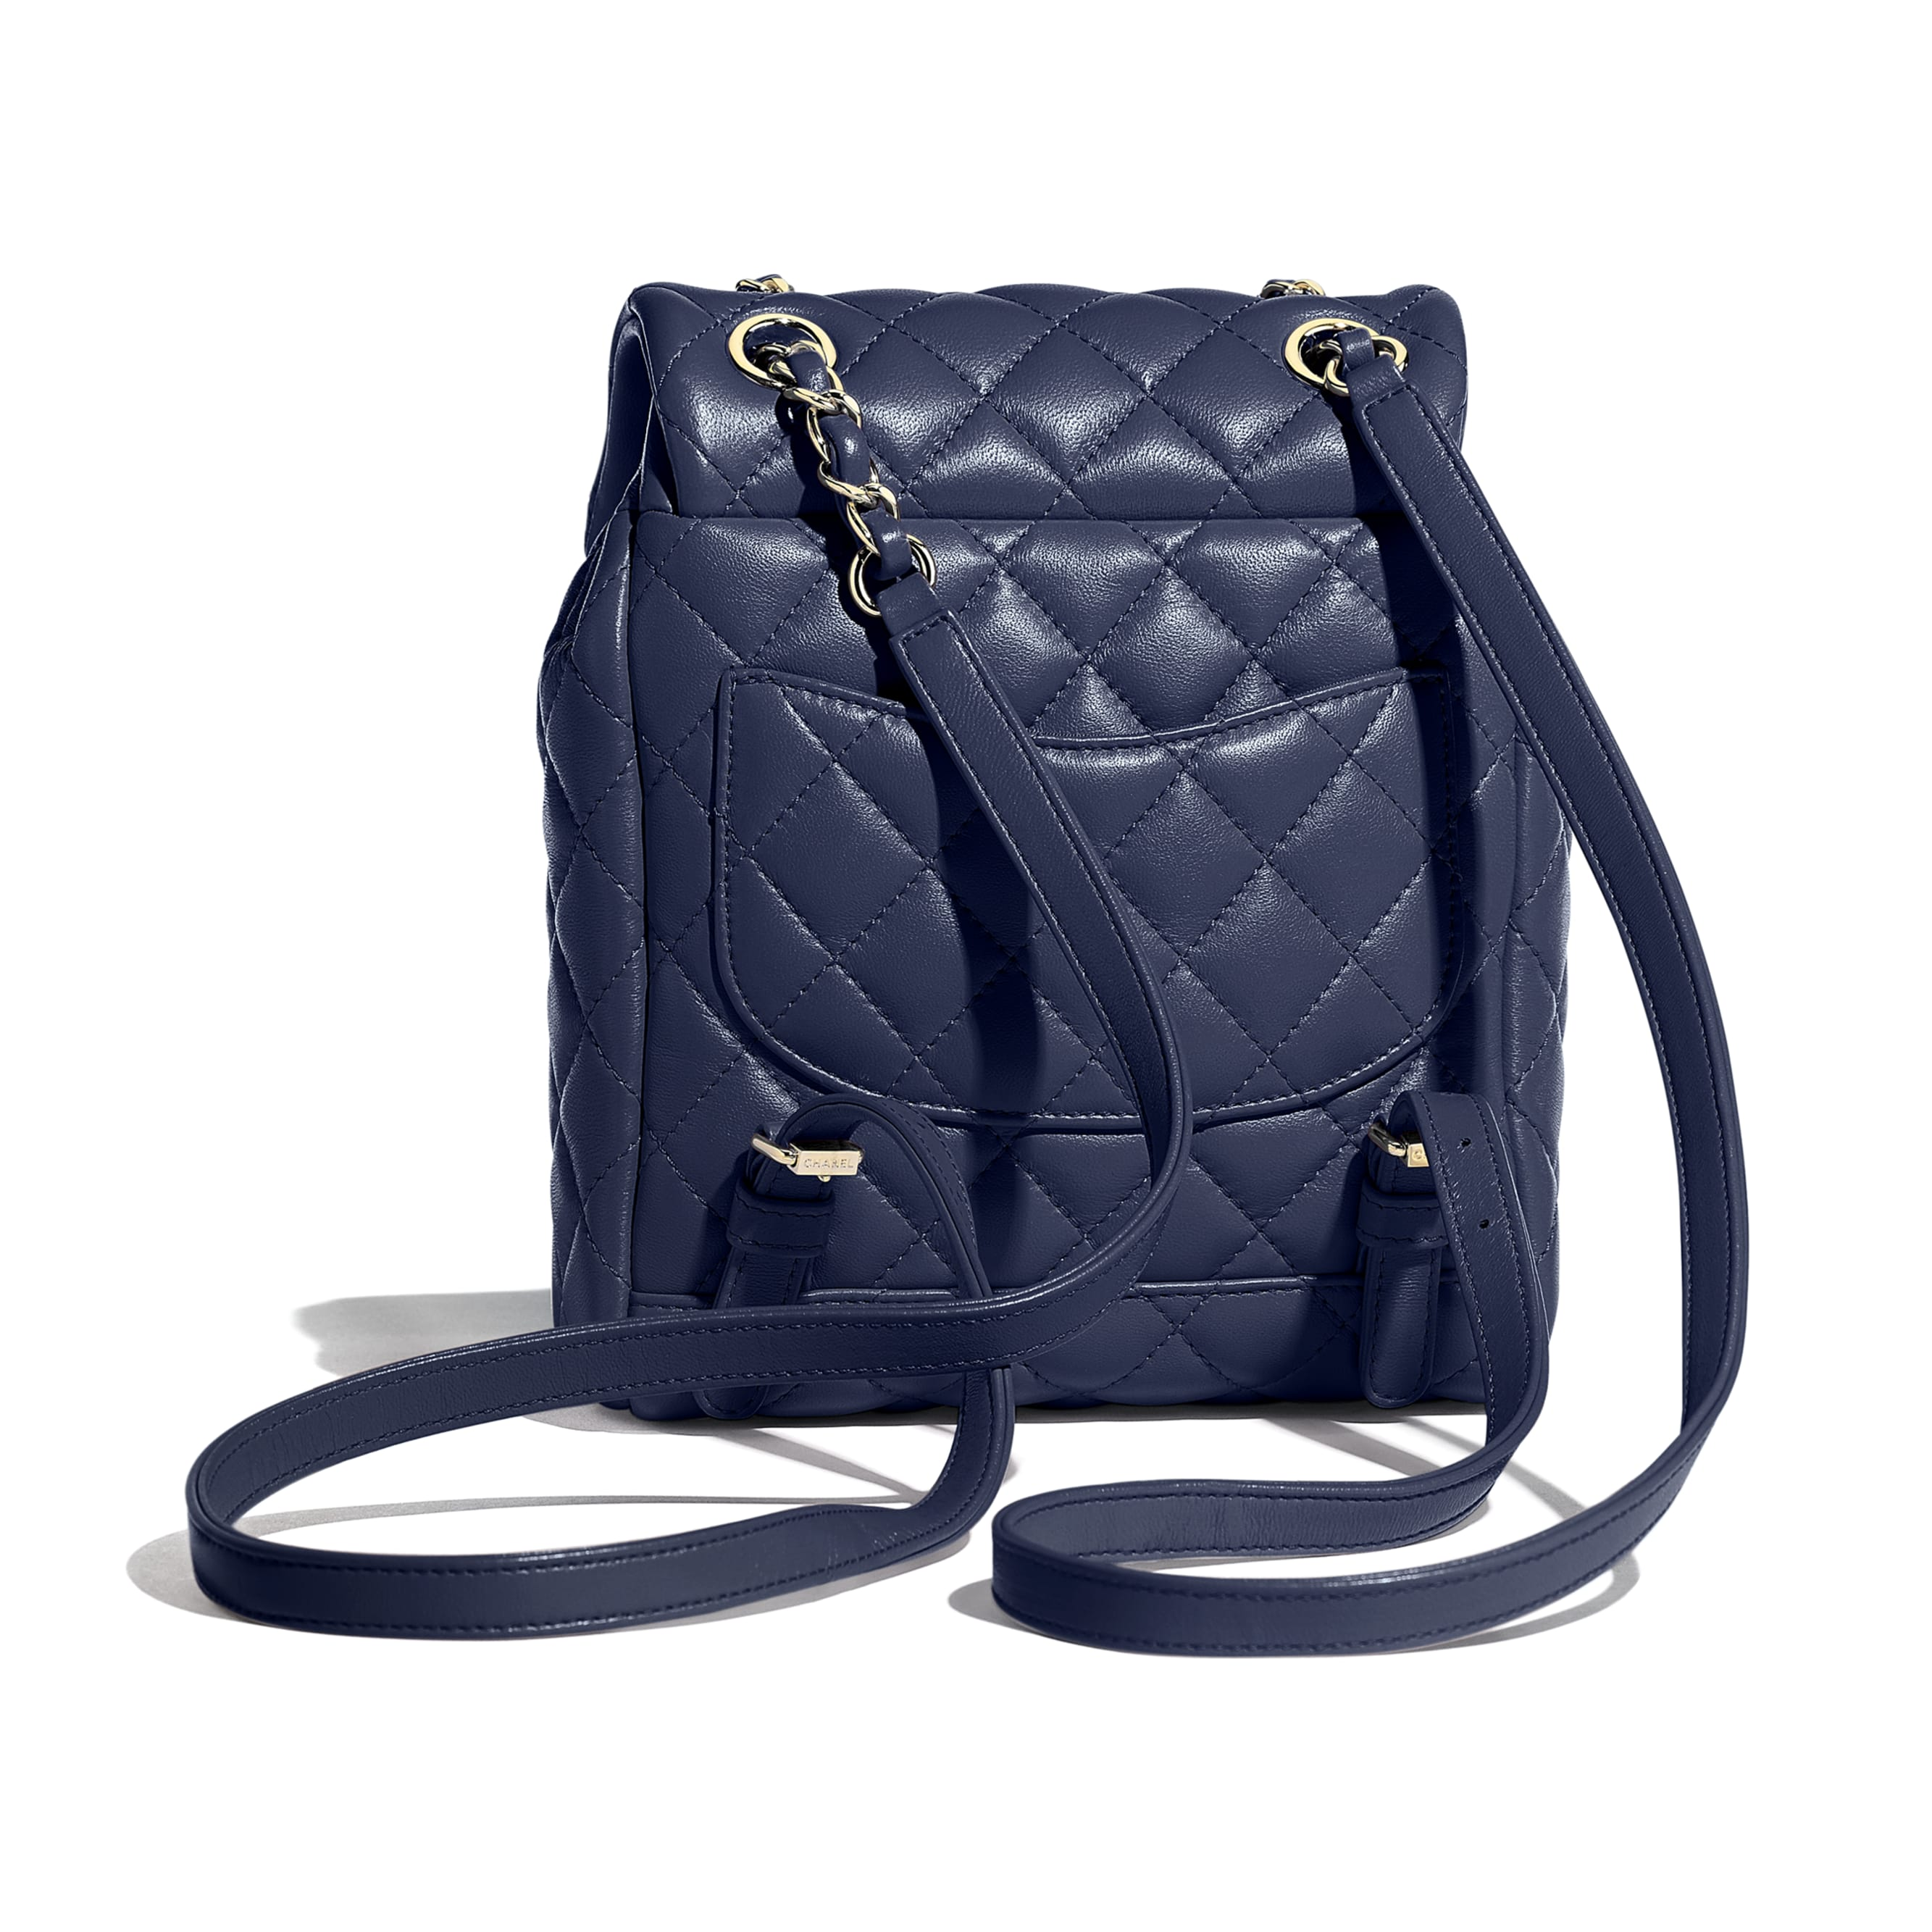 Backpack - Navy Blue - Lambskin & Gold-Tone Metal - Alternative view - see standard sized version